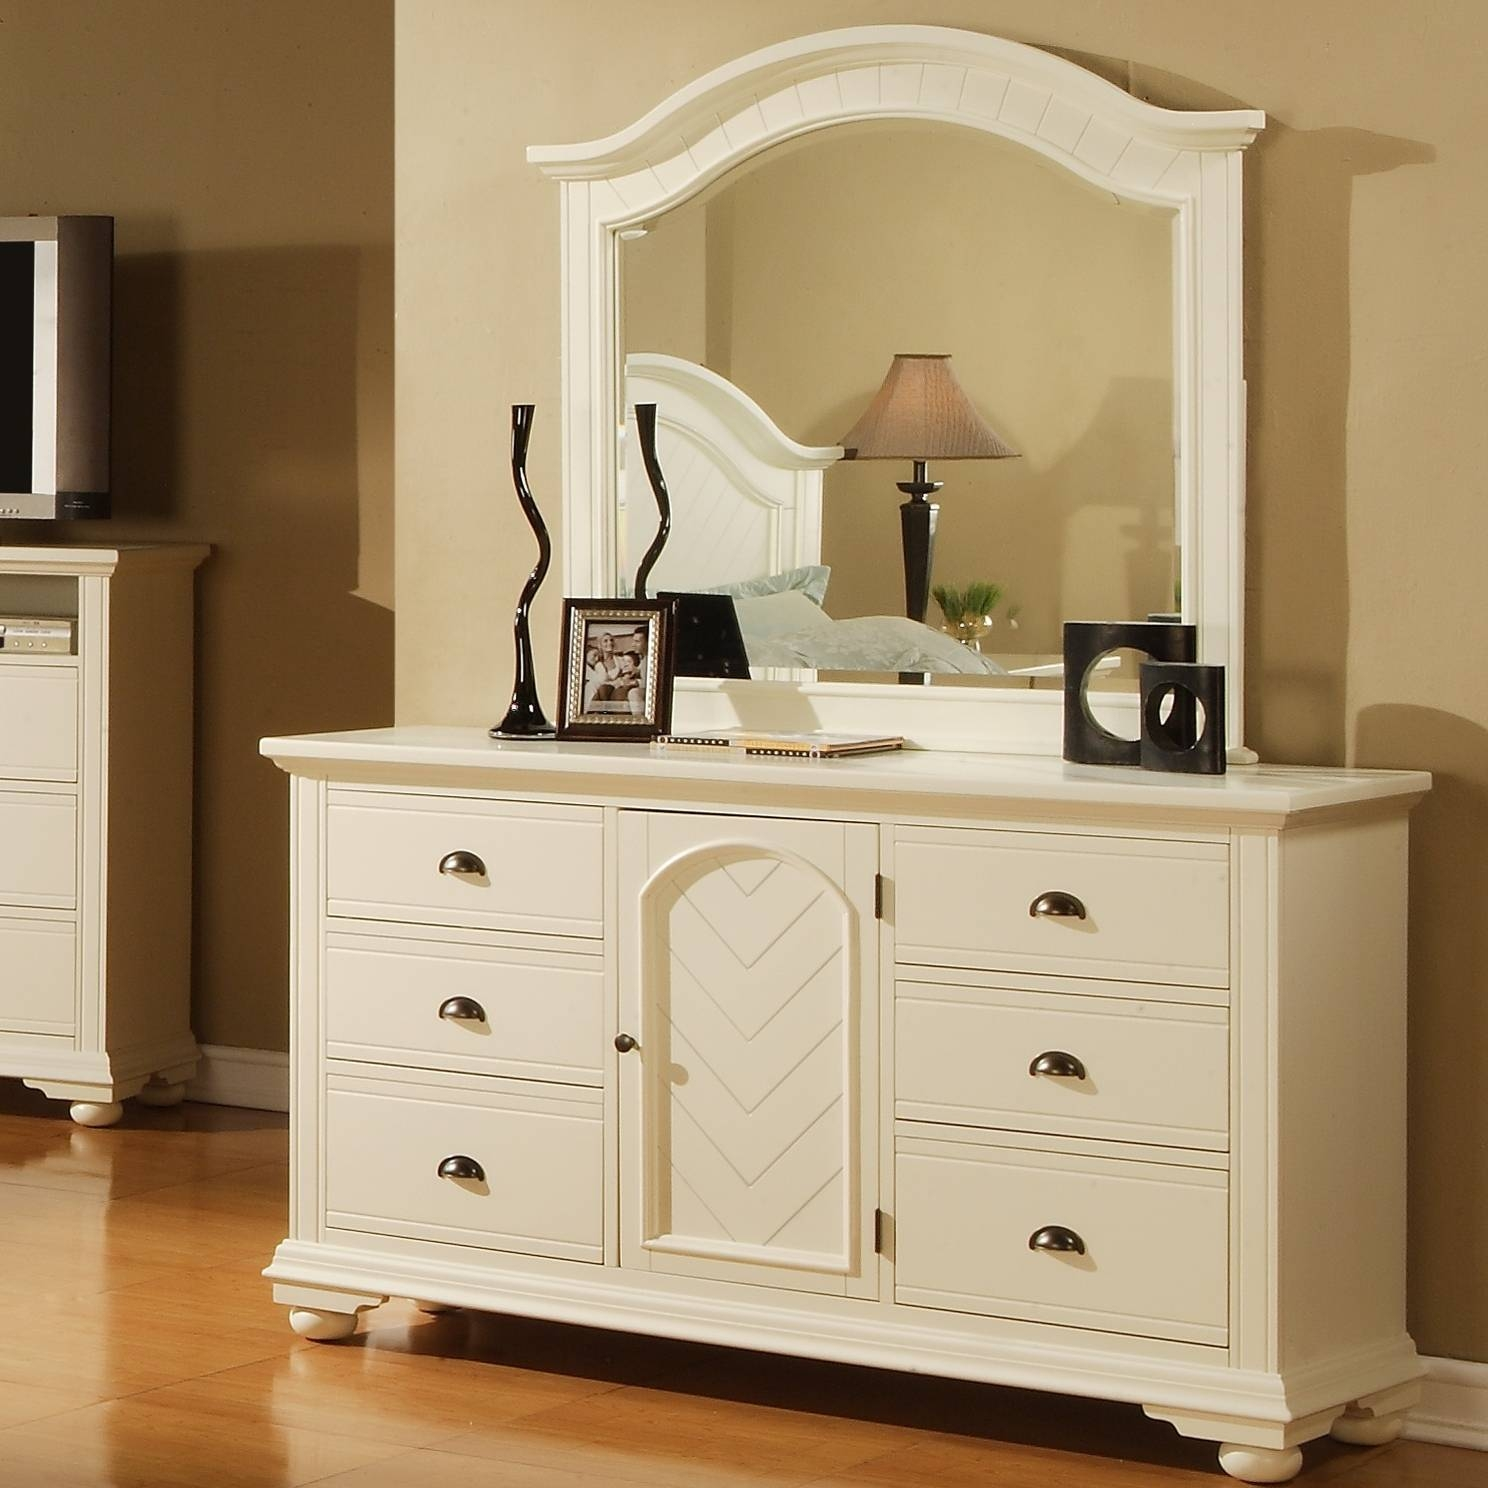 Bedroom Furniture : Makeup Storage Containers Beech Dressing Table with regard to Illuminated Dressing Table Mirrors (Image 6 of 25)